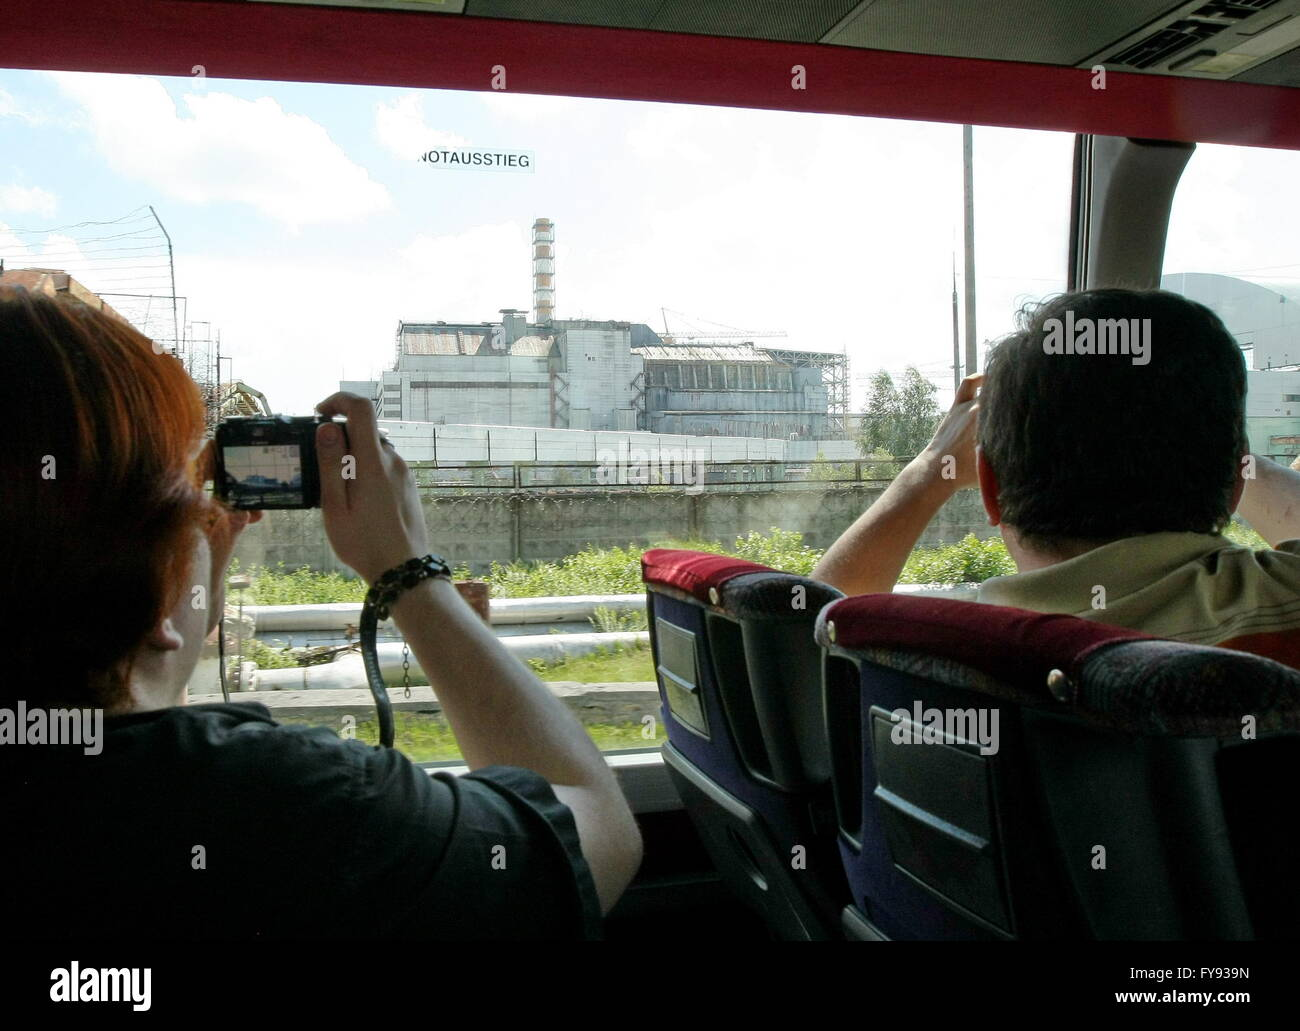 CHERNOBYL, UKRAINE. Pictured in this file image are people taking pictures of a sarcophagus covering Unit 4 of the Stock Photo